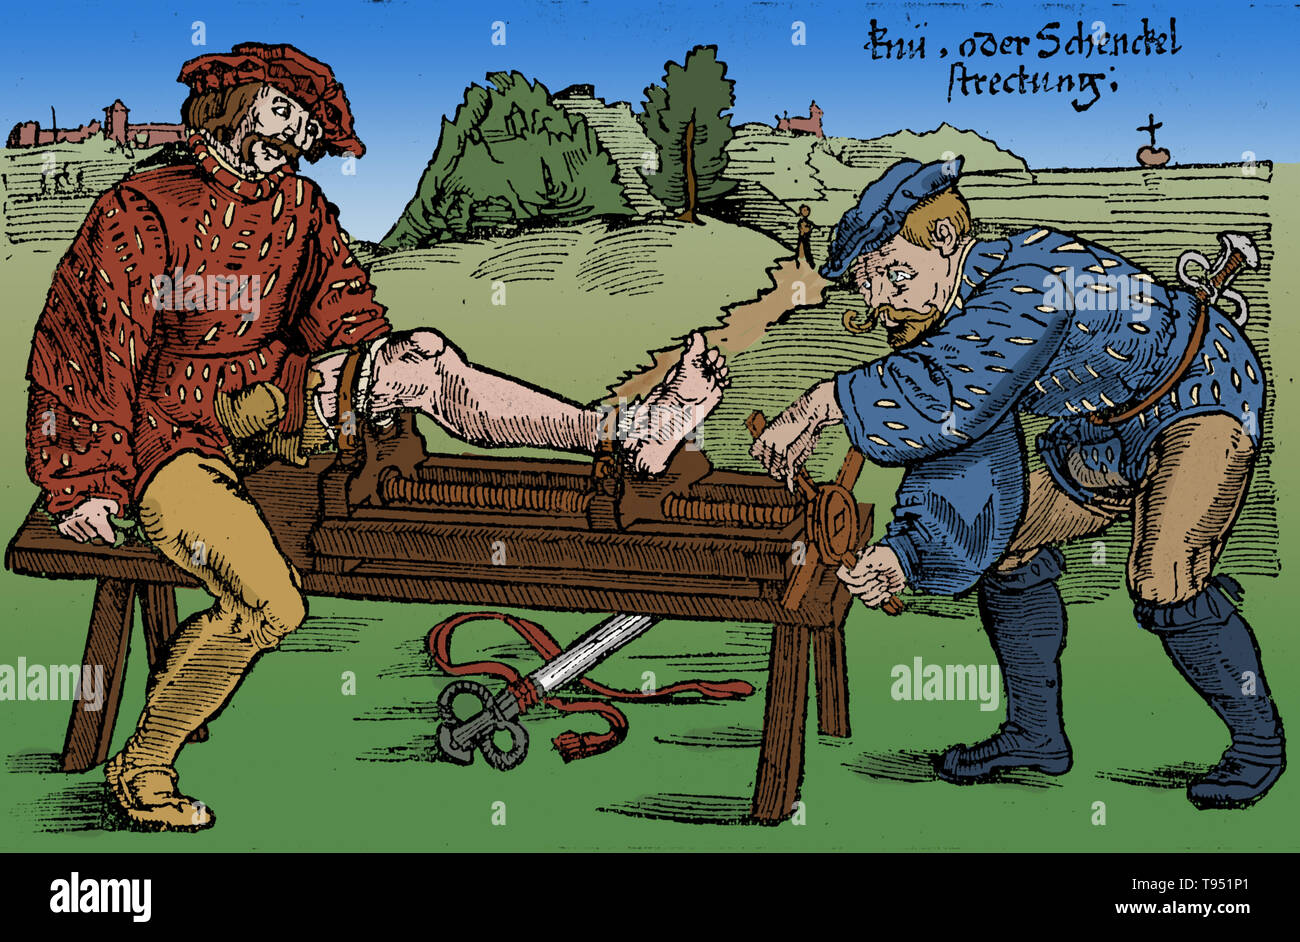 Reduction of a fracture of the leg on the battlefield, 1528. Woodcut from Feldtbuch des Wundartzney (Fieldbook of Surgery) by H. von Gersdorff, Strasbourg. This image has been colorized. - Stock Image